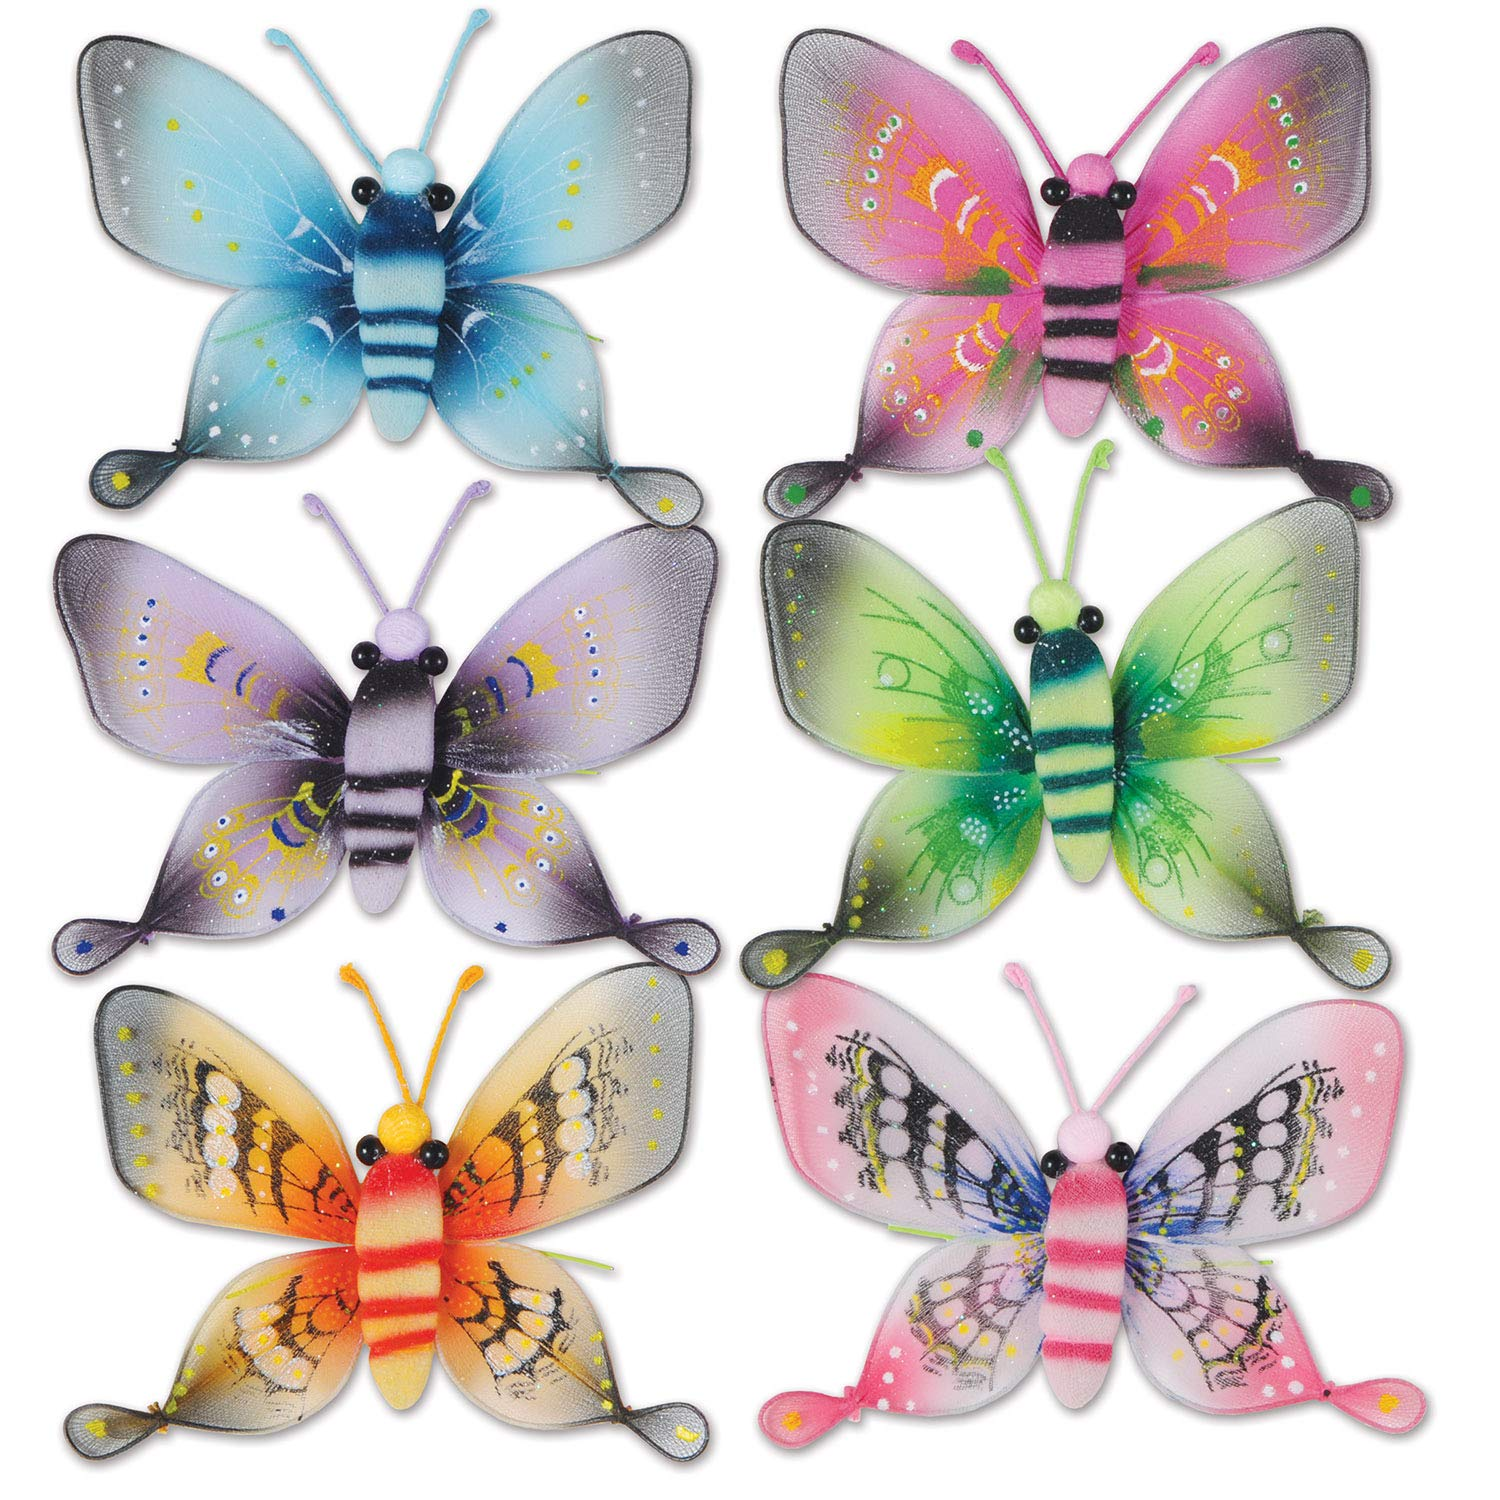 Beistle Butterfly Decortations, 5 Inch Printed Glittered Nylon Fabric Wings Assorted Colors, Pack 12